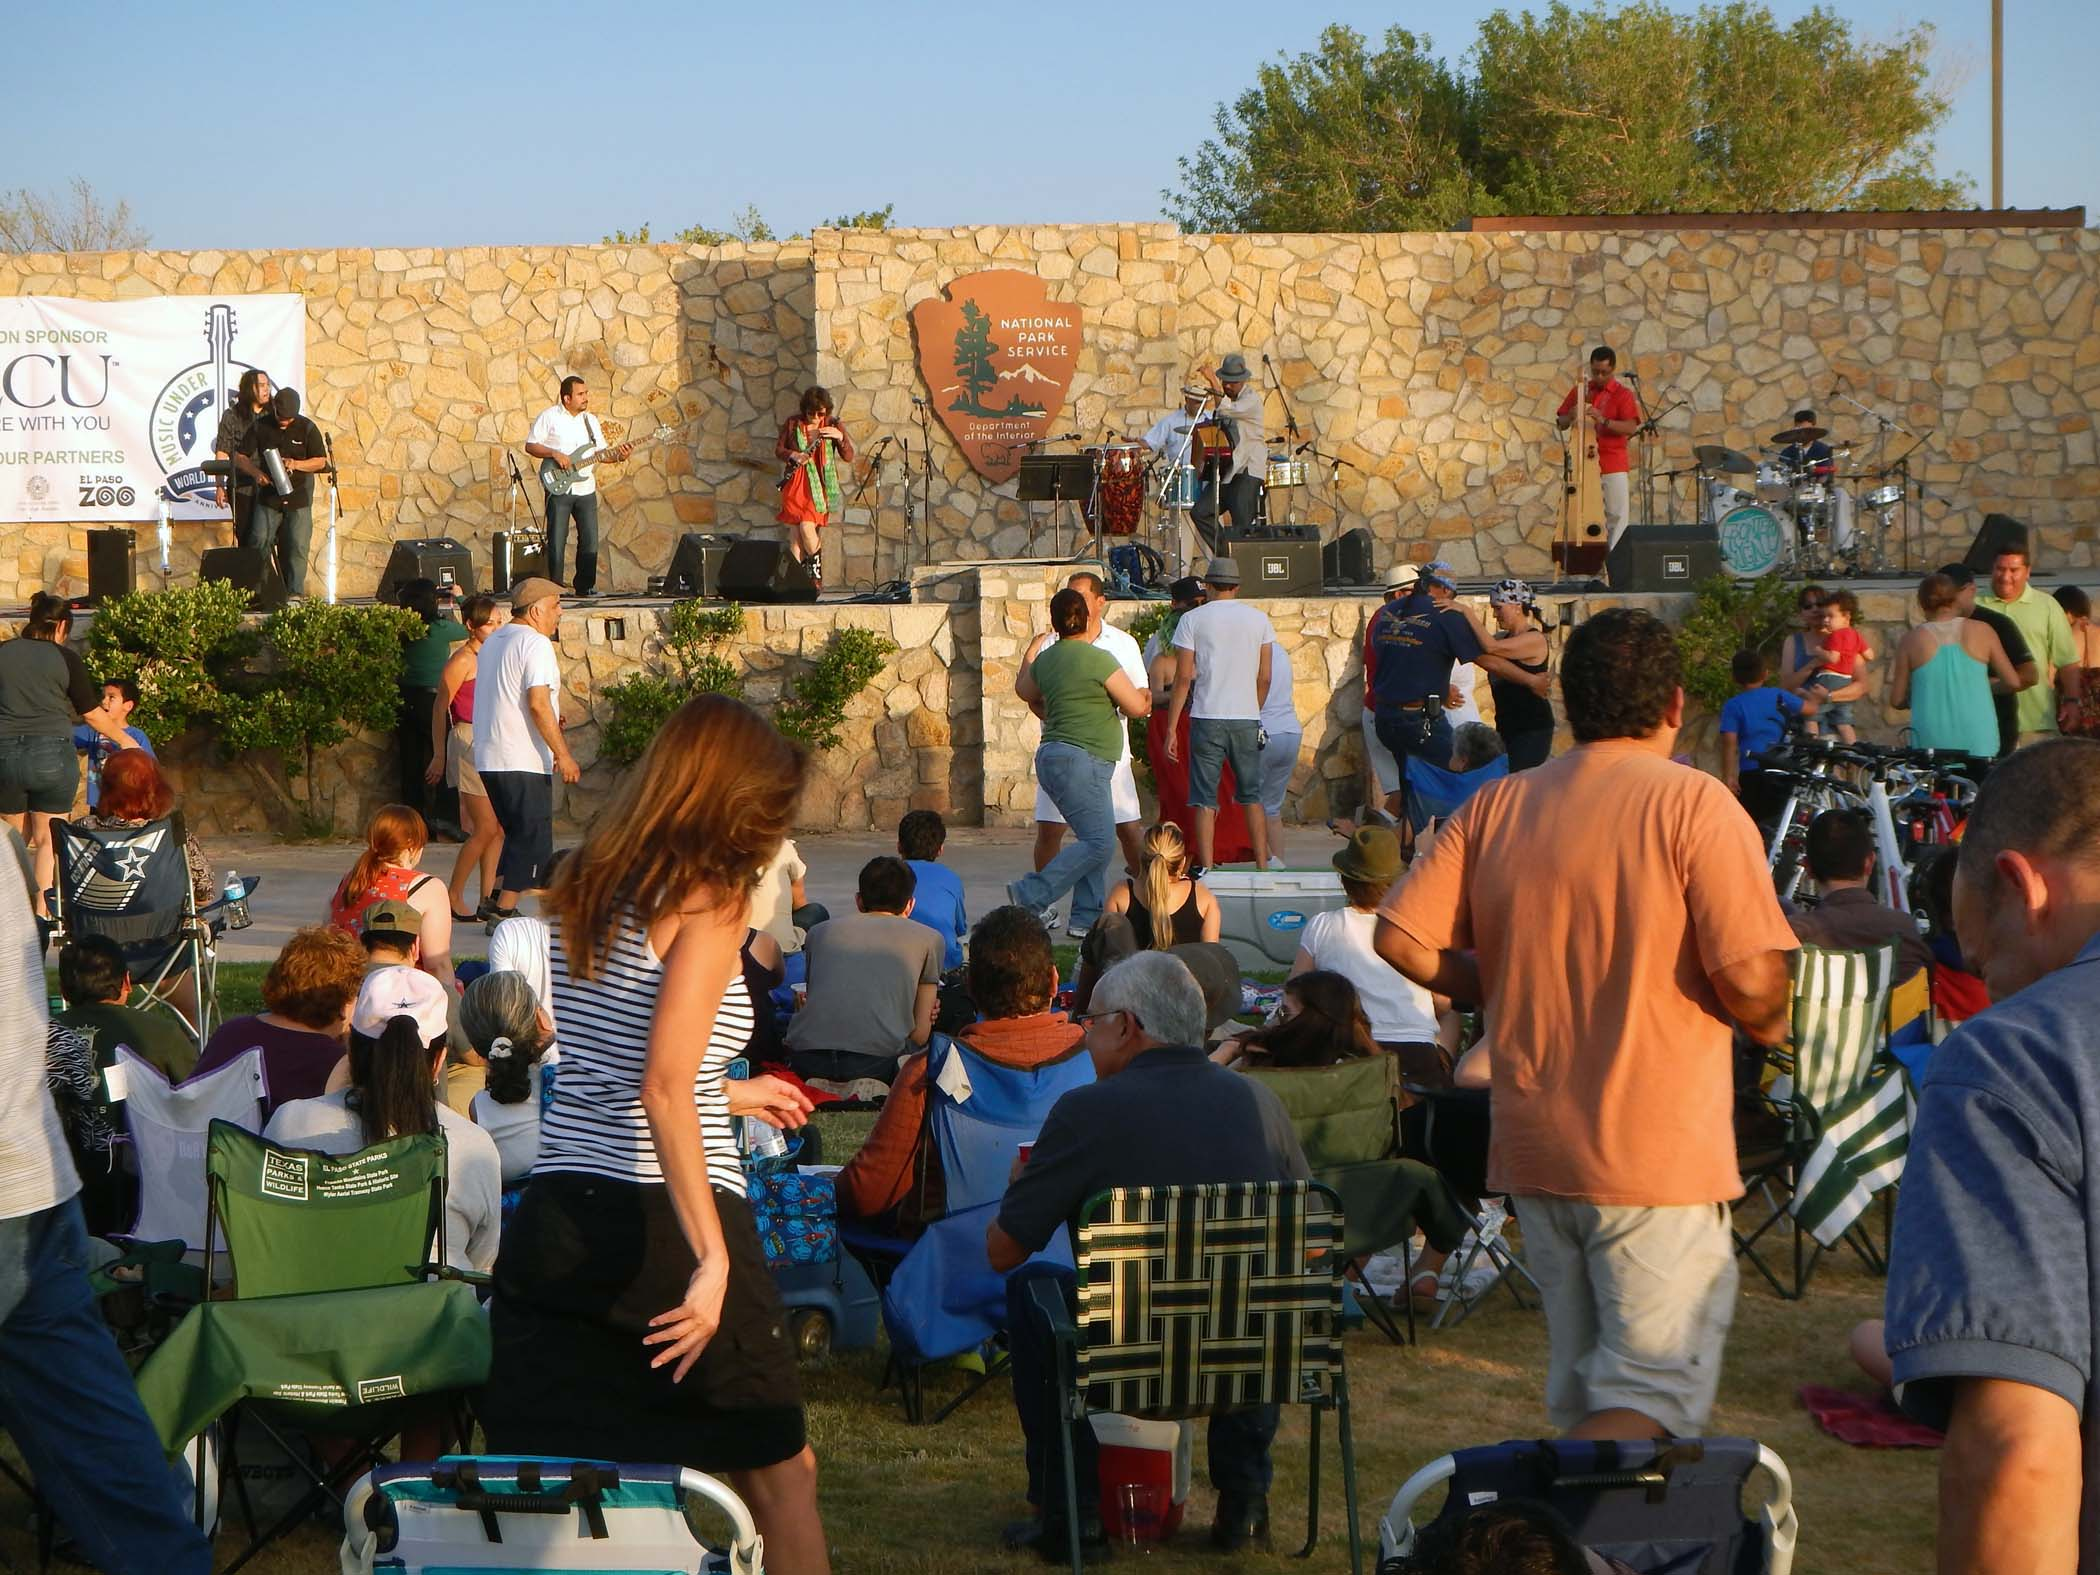 the back of a large group of people, some sitting in lawn chairs and some dancing, in front of amphitheater with band onstage